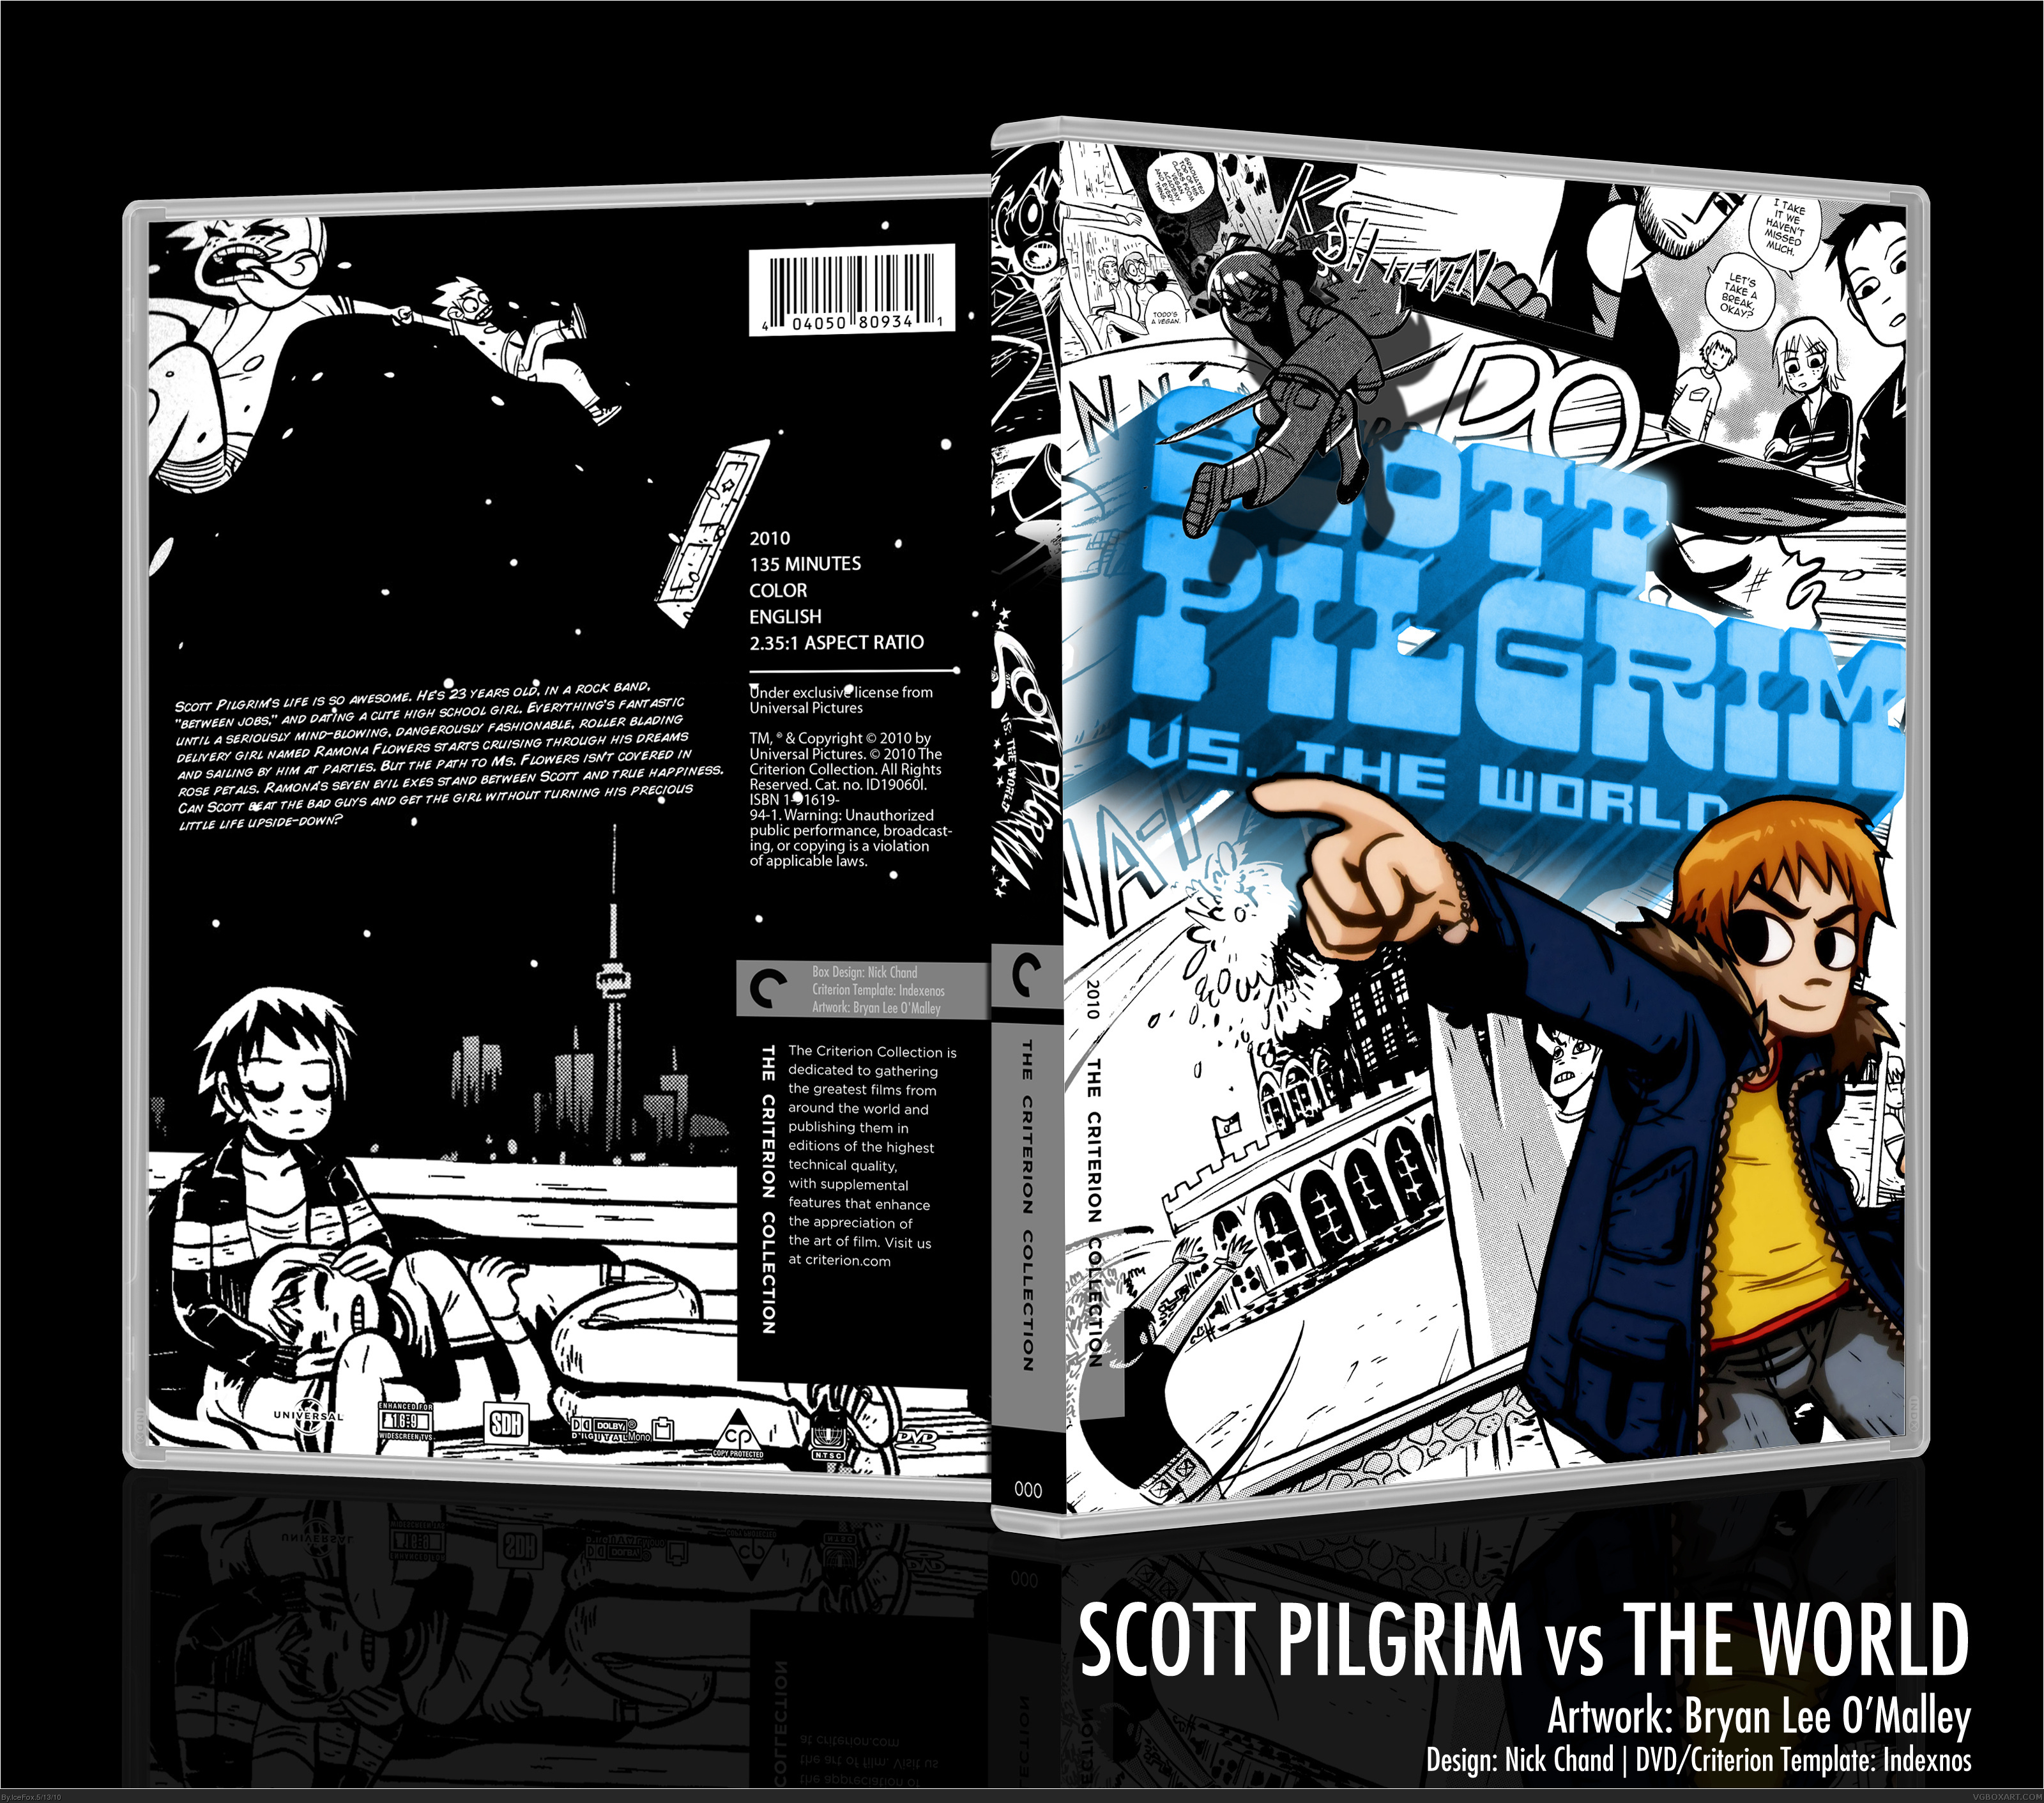 Scott Pilgrim vs The World box cover